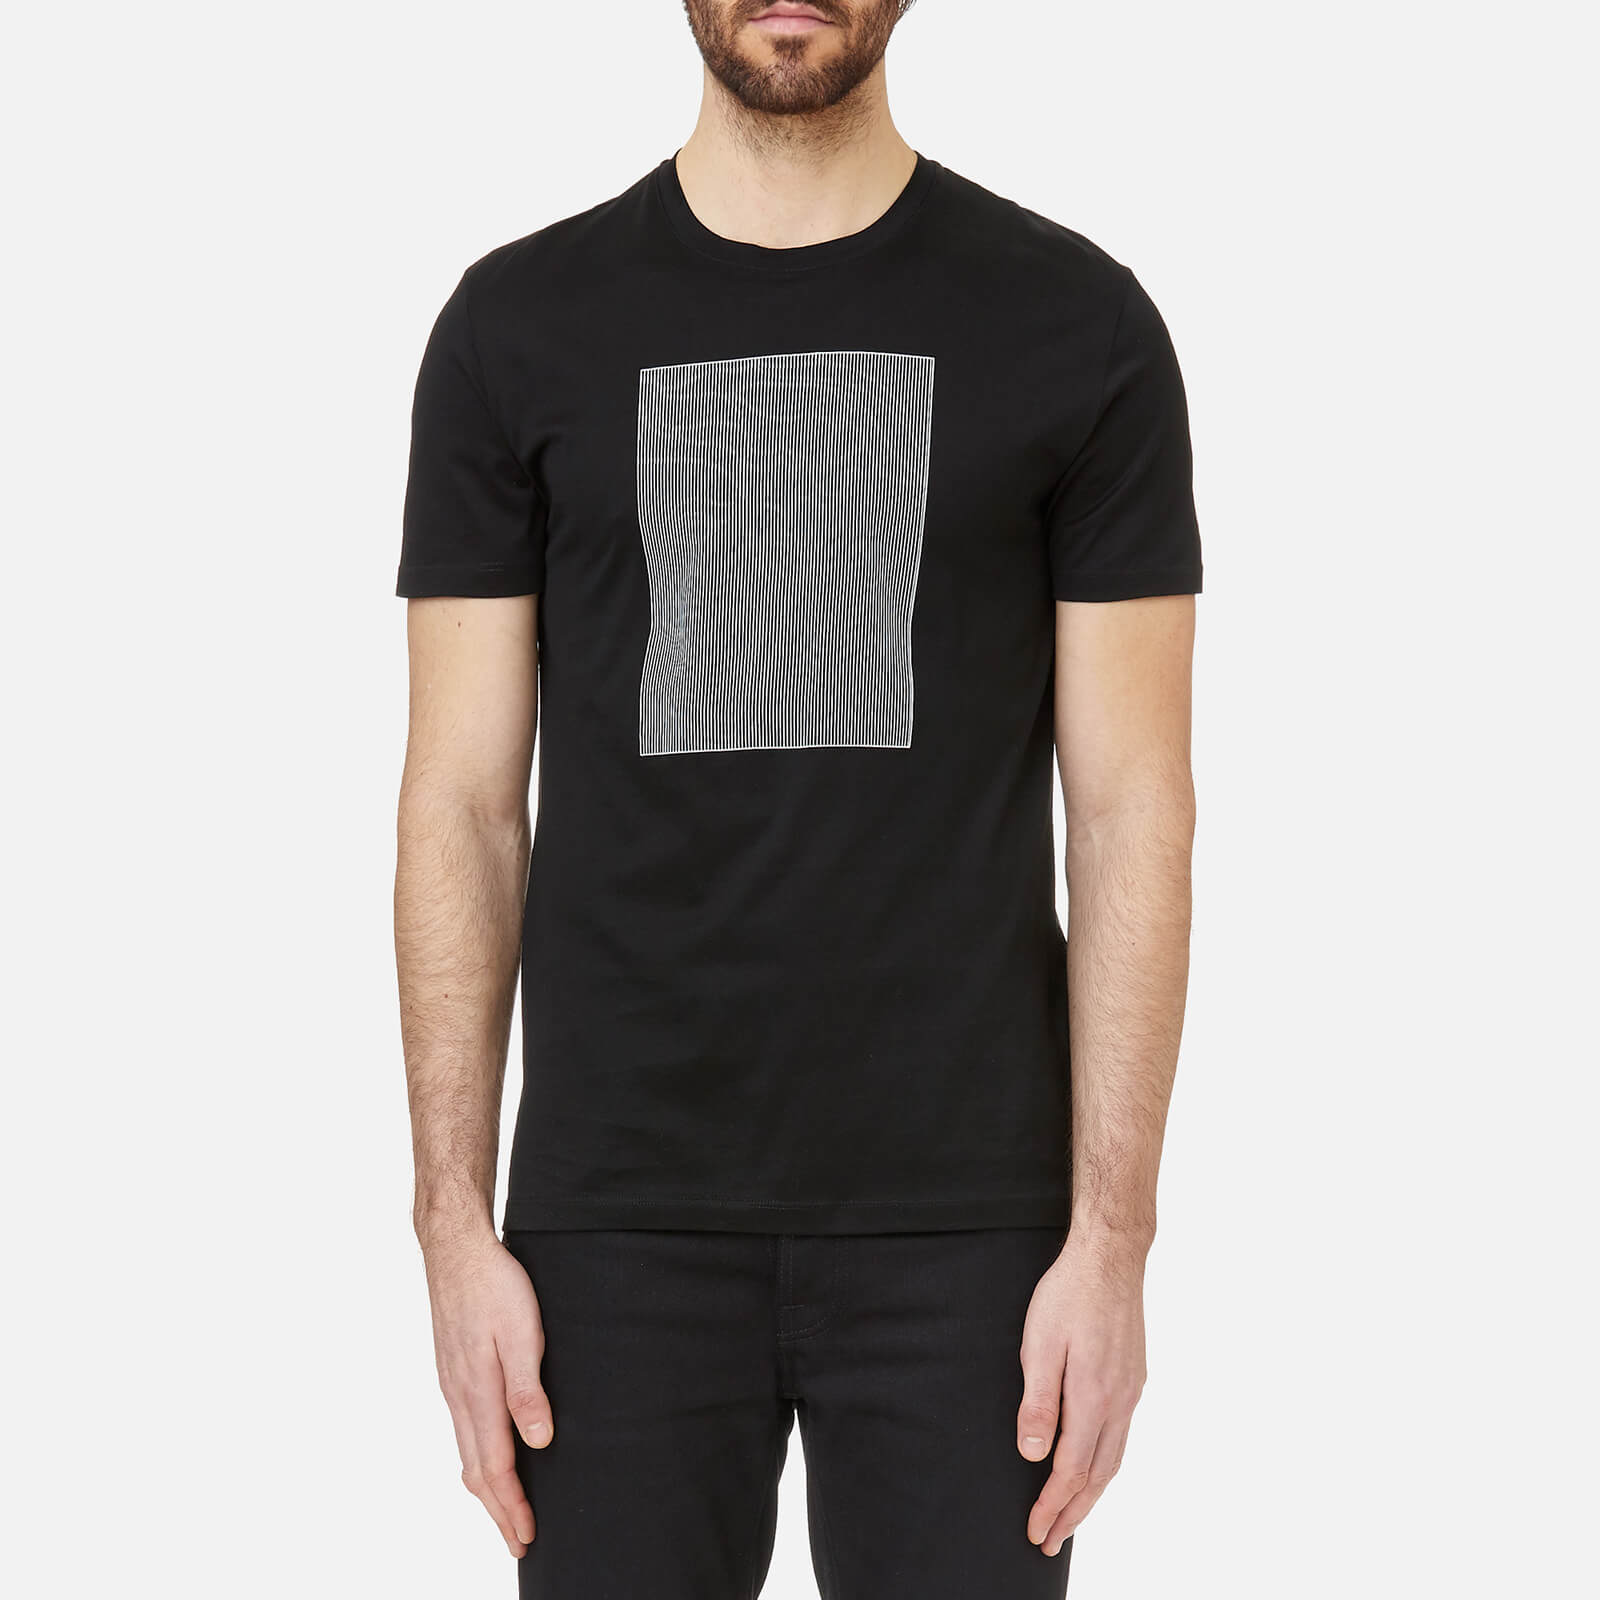 61281230 Versace Collection Men's Box Logo T-Shirt - Nero/Stampa - Free UK Delivery  over £50